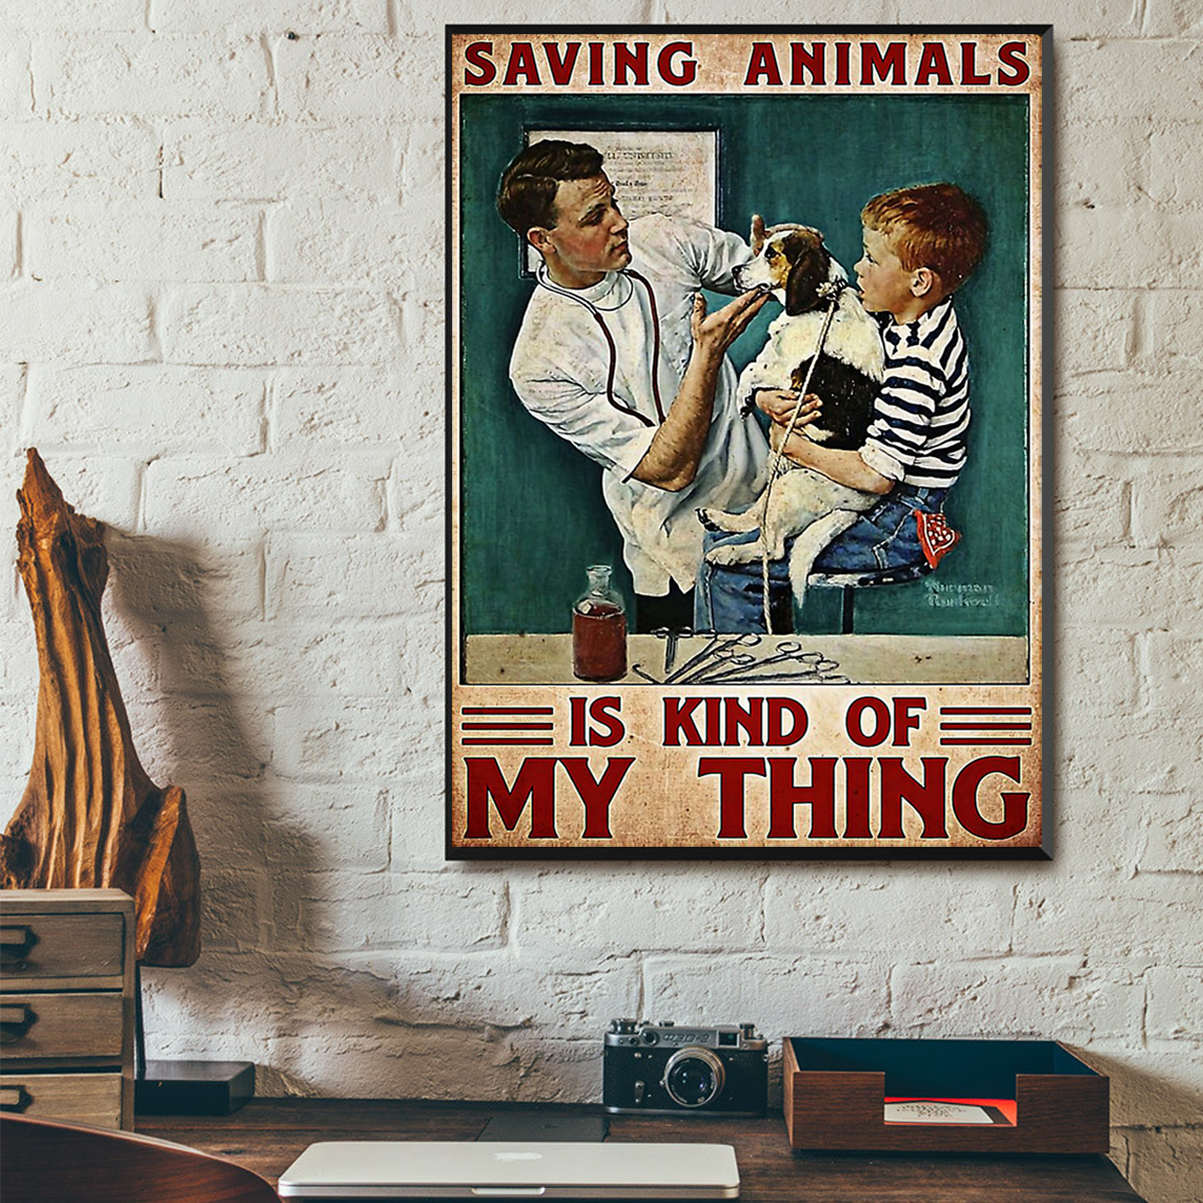 Veterinarian saving animals is kind of my thing poster A1